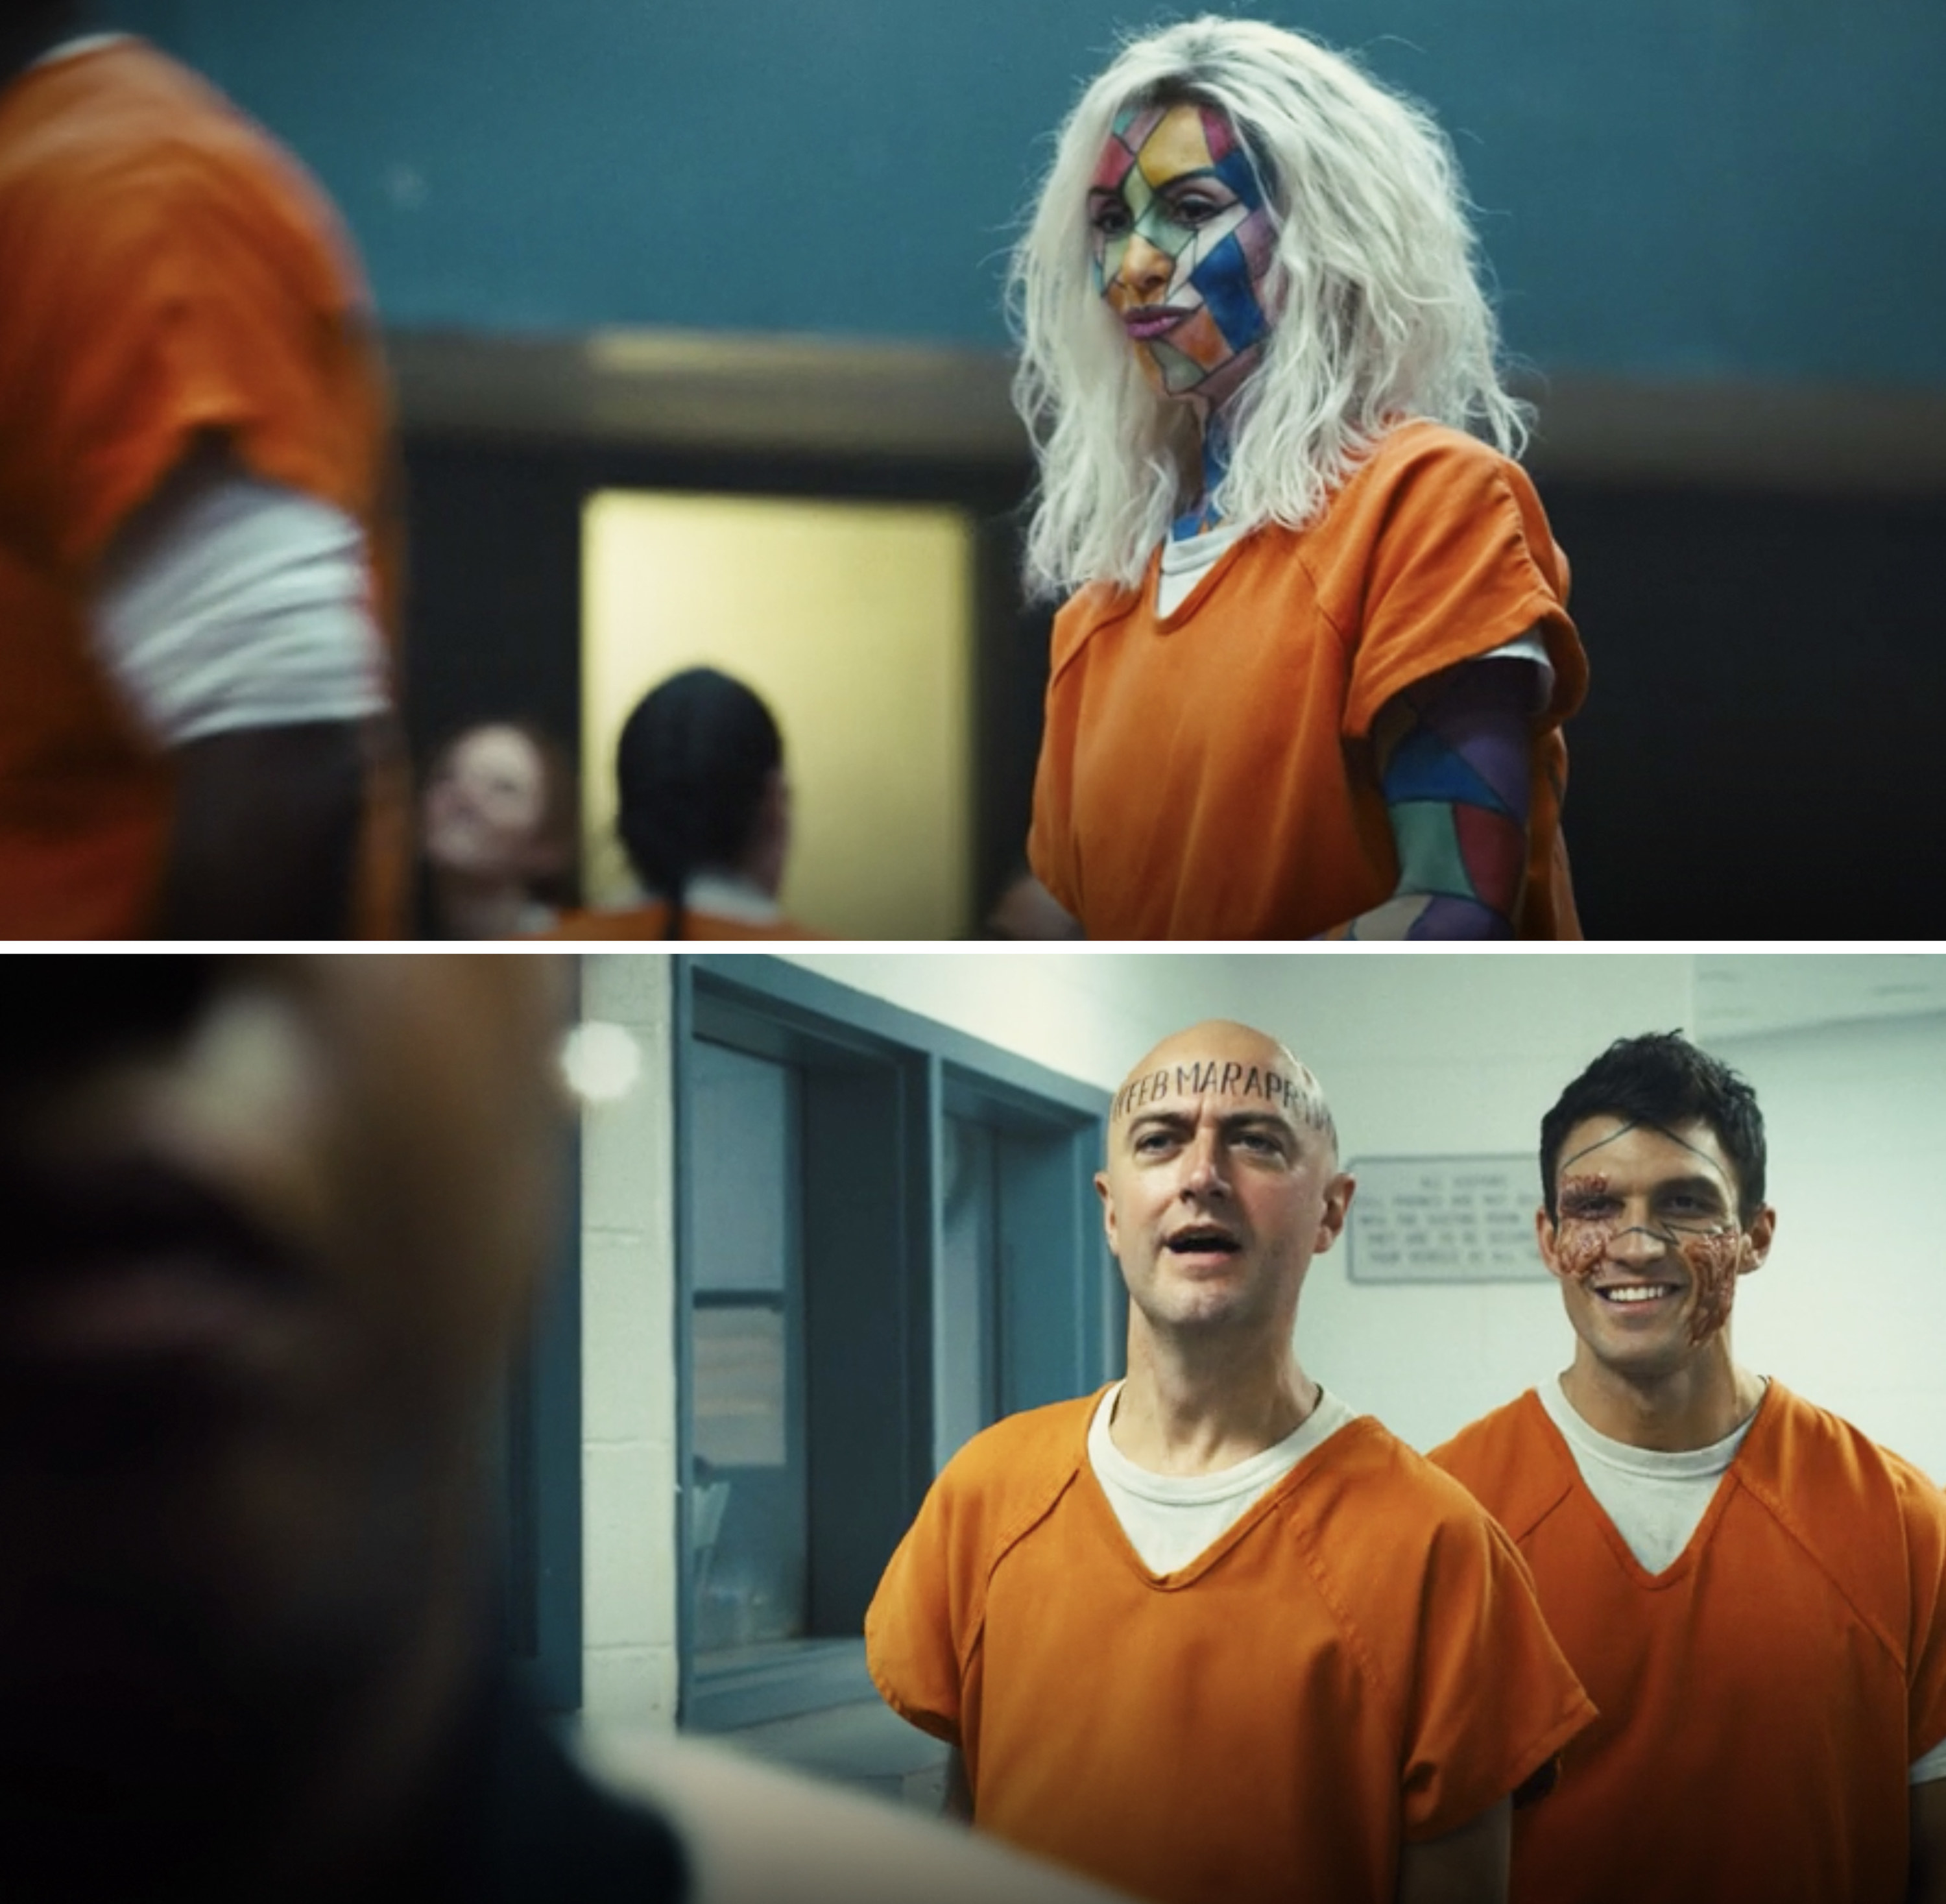 Kaleidoscope, Calendar Man, and Double Down in orange prison outfits